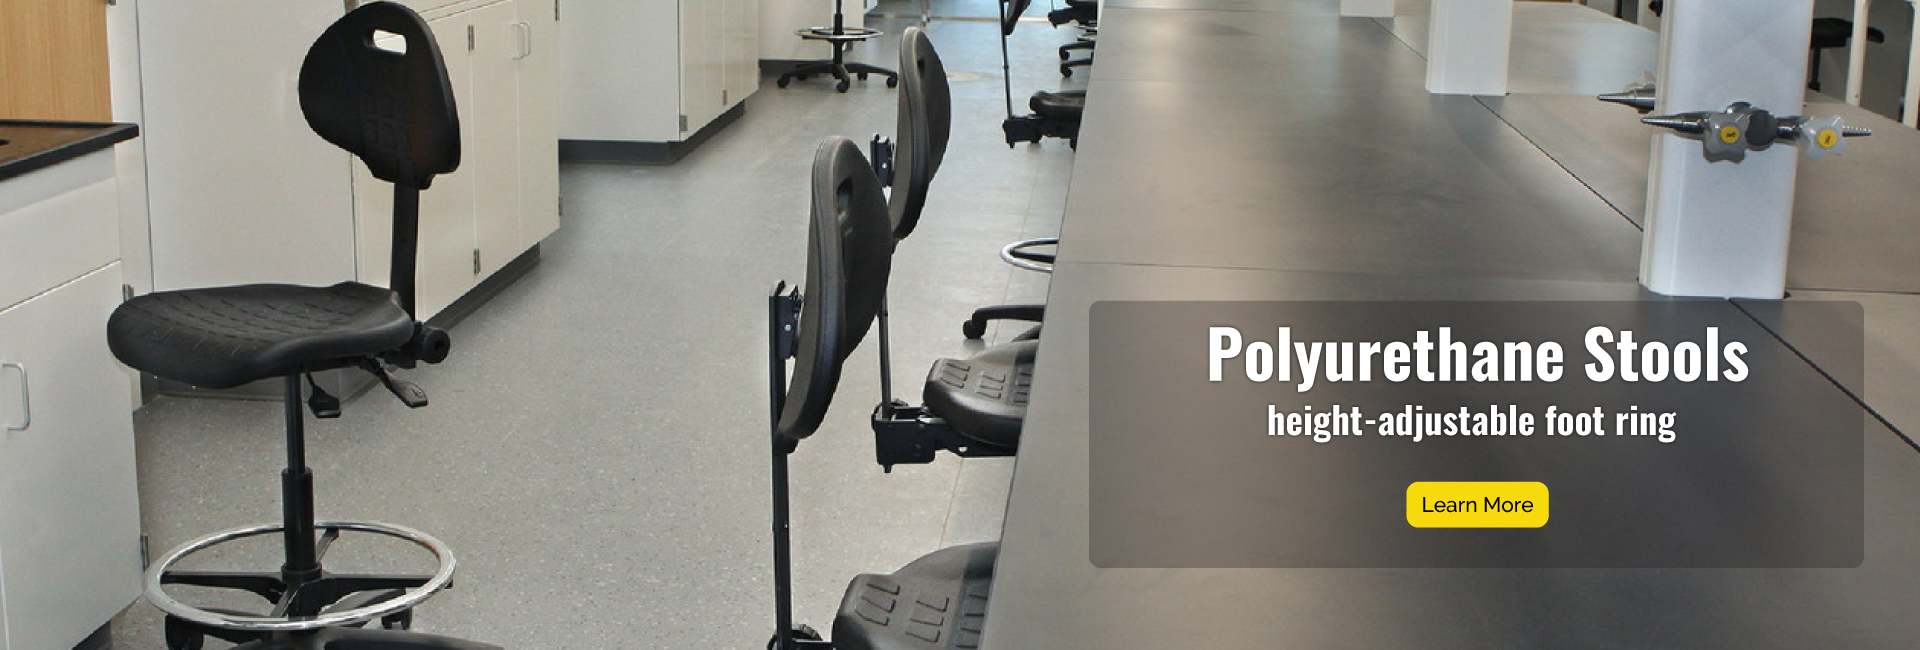 Polyrurethane Stools have adjustable-height footring